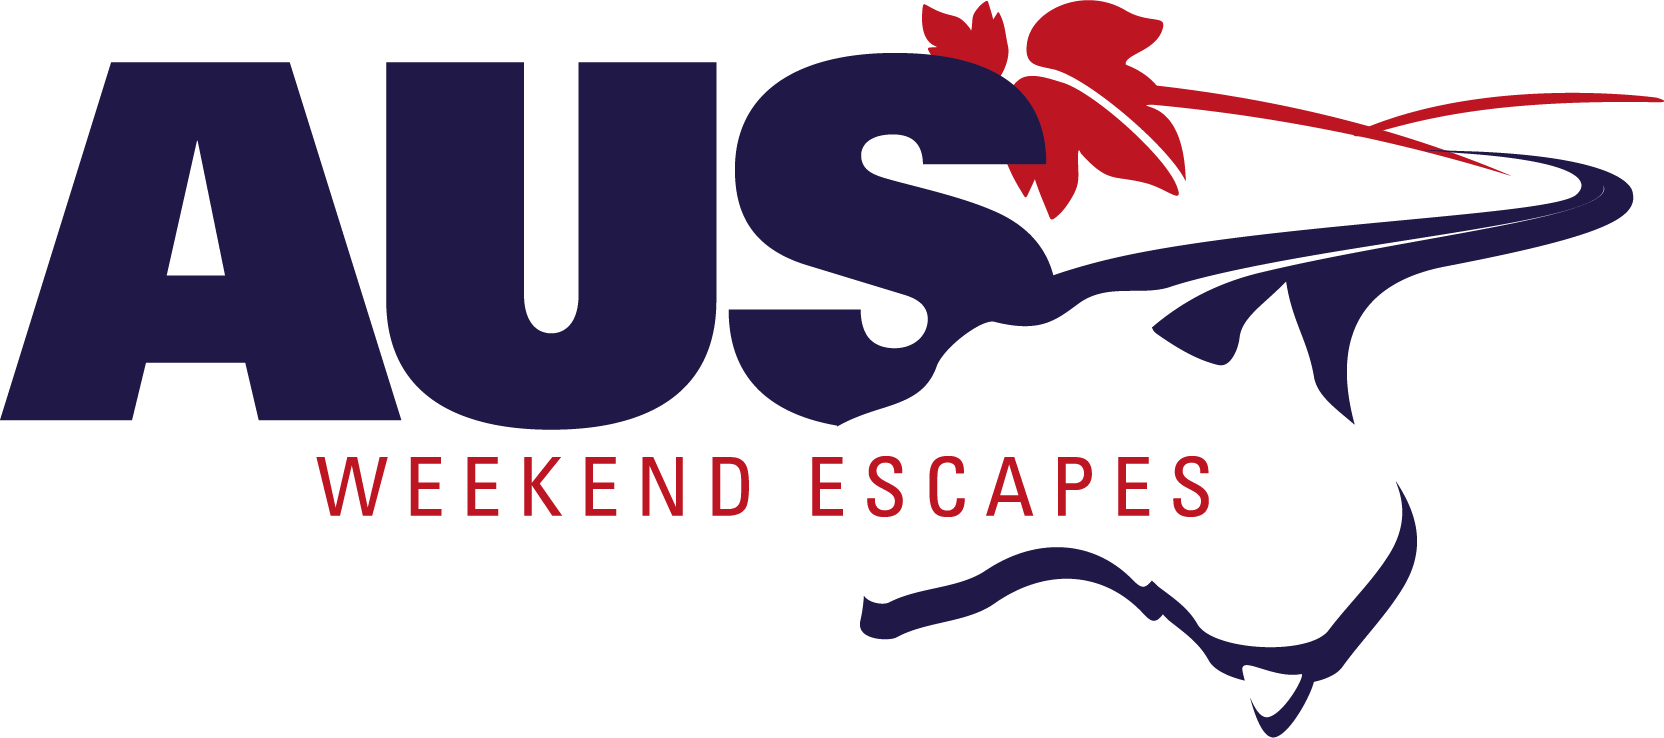 Aus Weekend Escapes